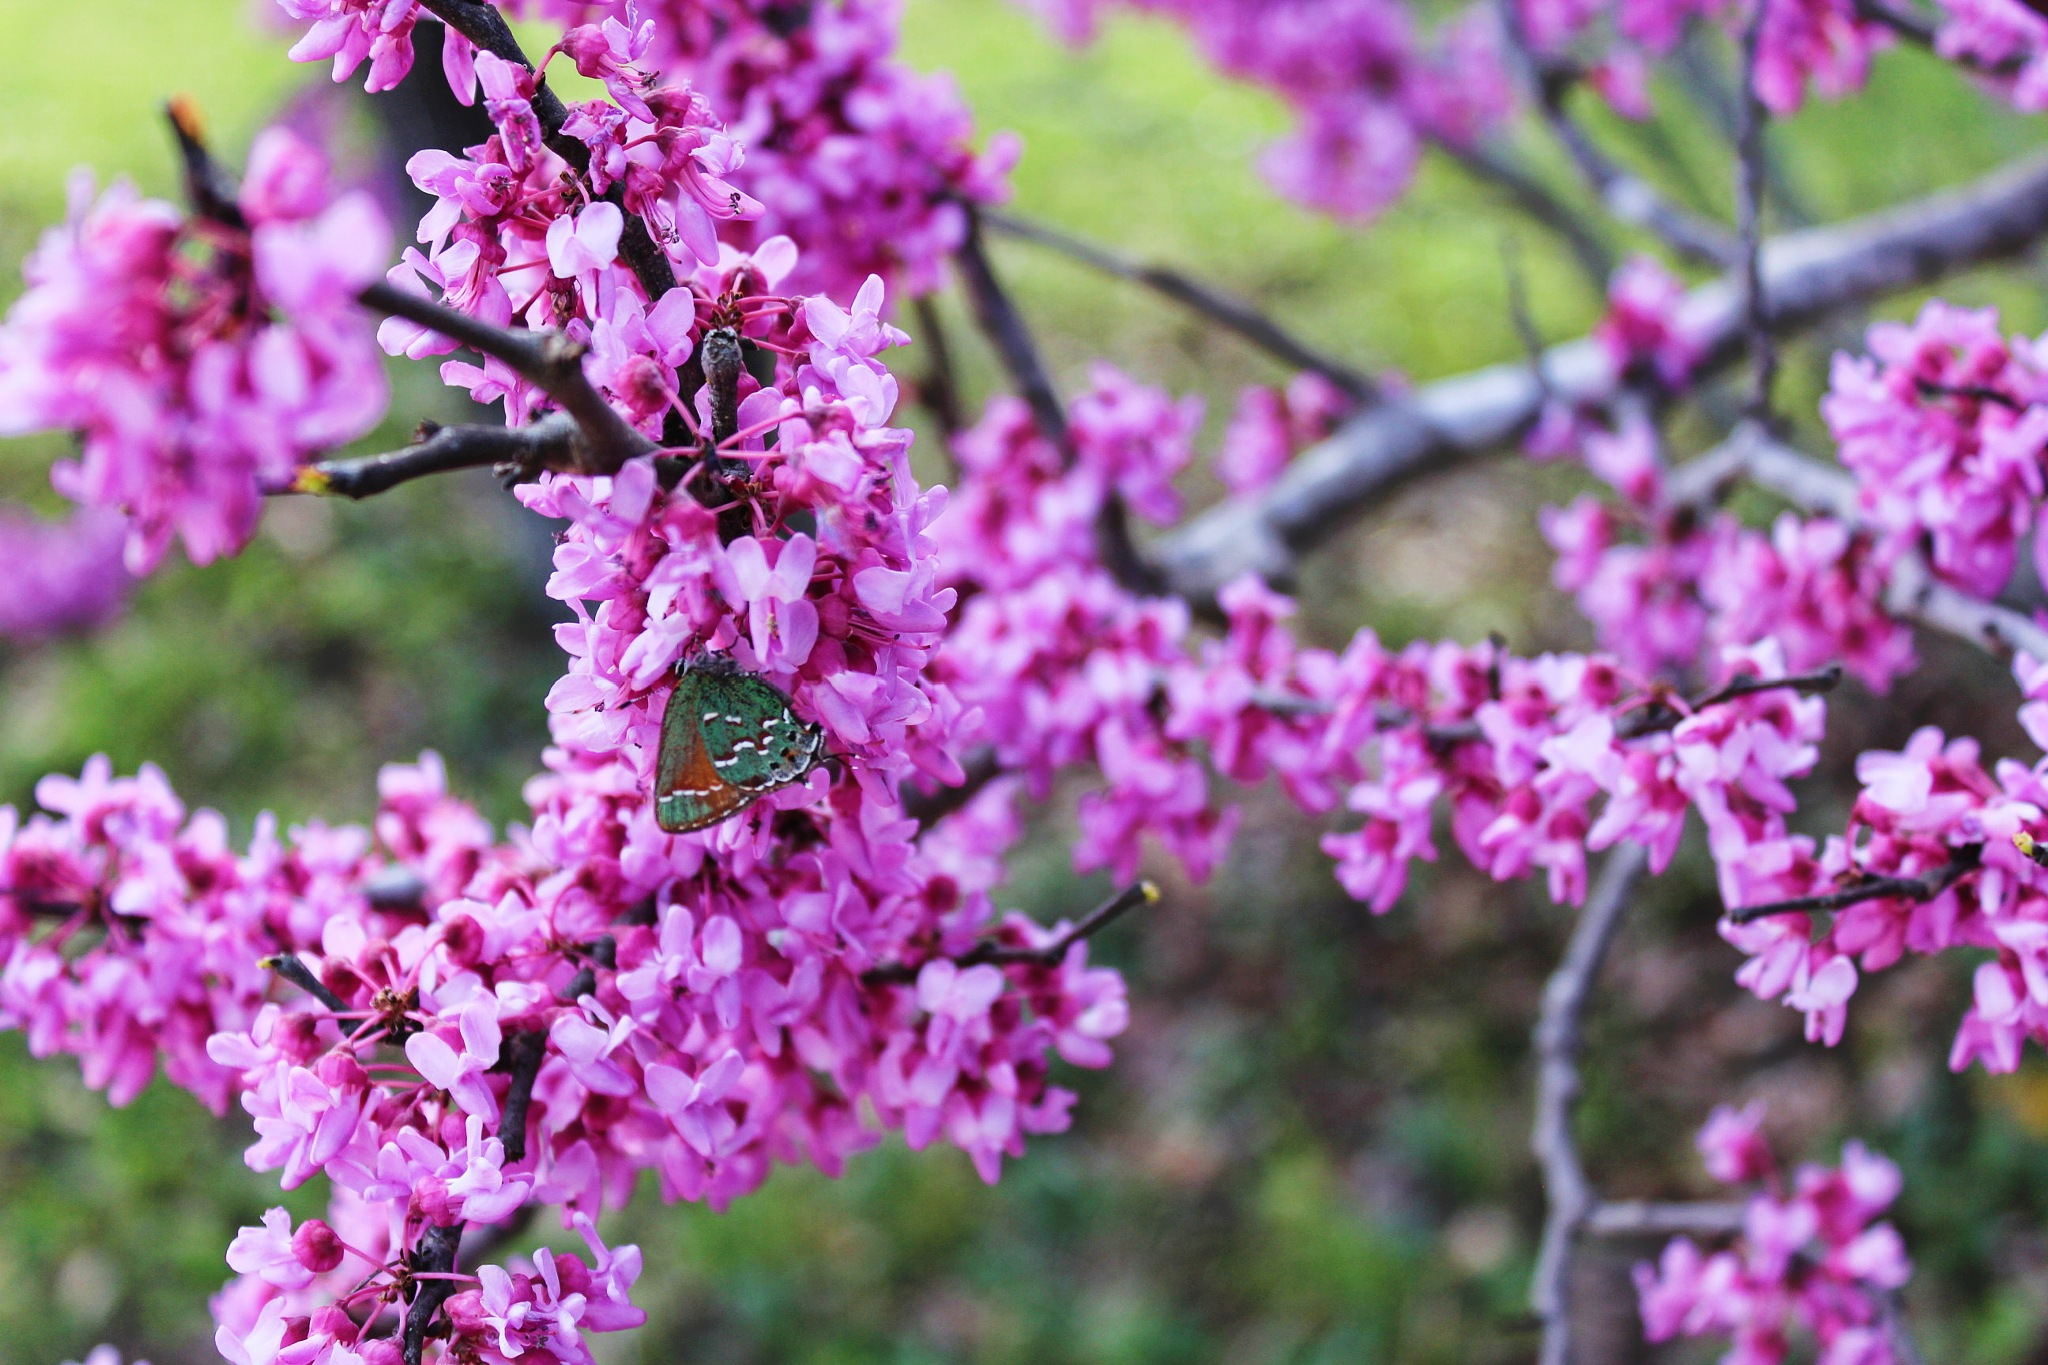 Butterfly on Redbud Tree by Poised Vision Pictorial Arts